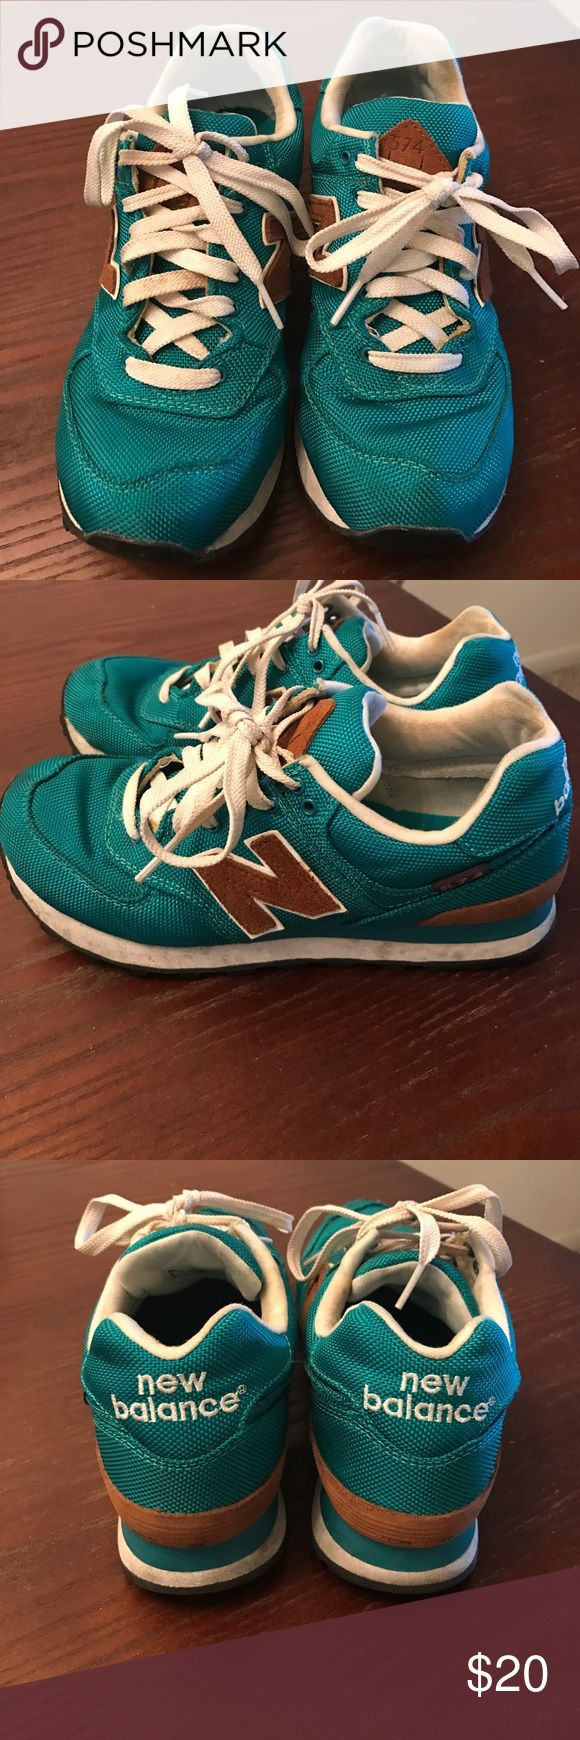 """New Balance 574 Women's new balance 574 """"backpack edition"""" turquoise/camel/white. These shoes are worn in good condition with no rips or tears. They still have a great tread on the bottom as well. New Balance Shoes Sneakers"""